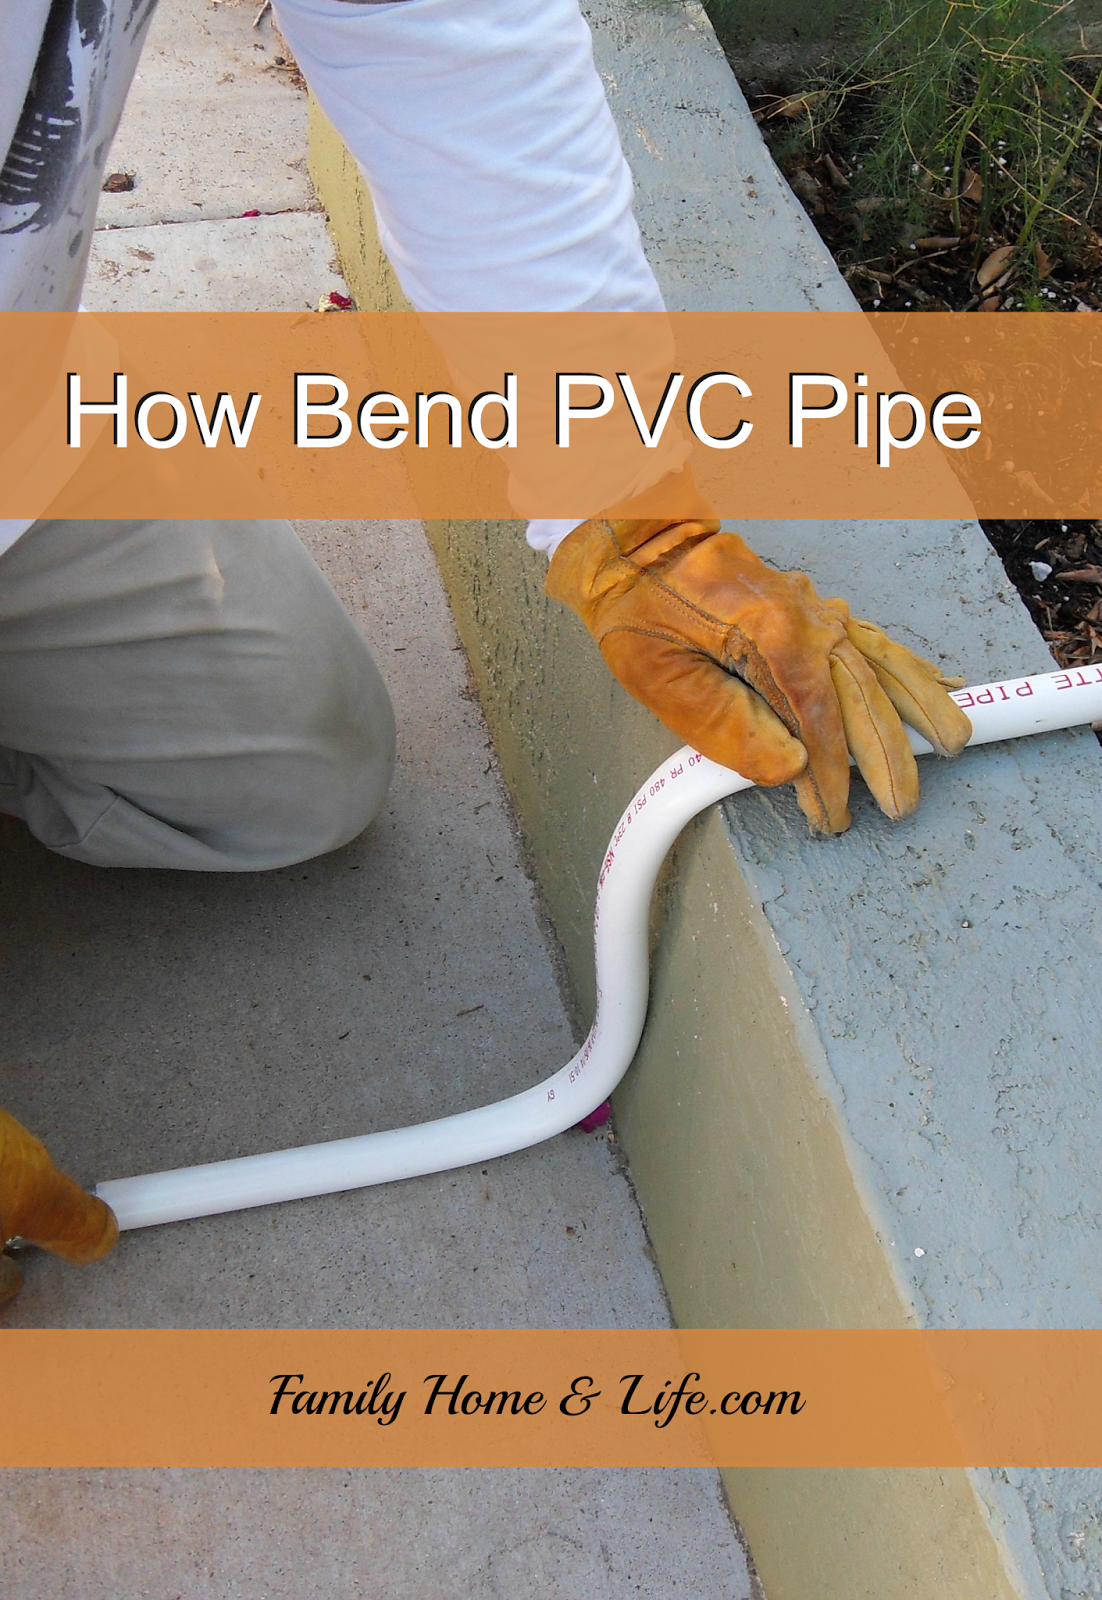 http://www.familyhomeandlife.com/2014/10/how-to-bend-shape-pvc-pipe.html